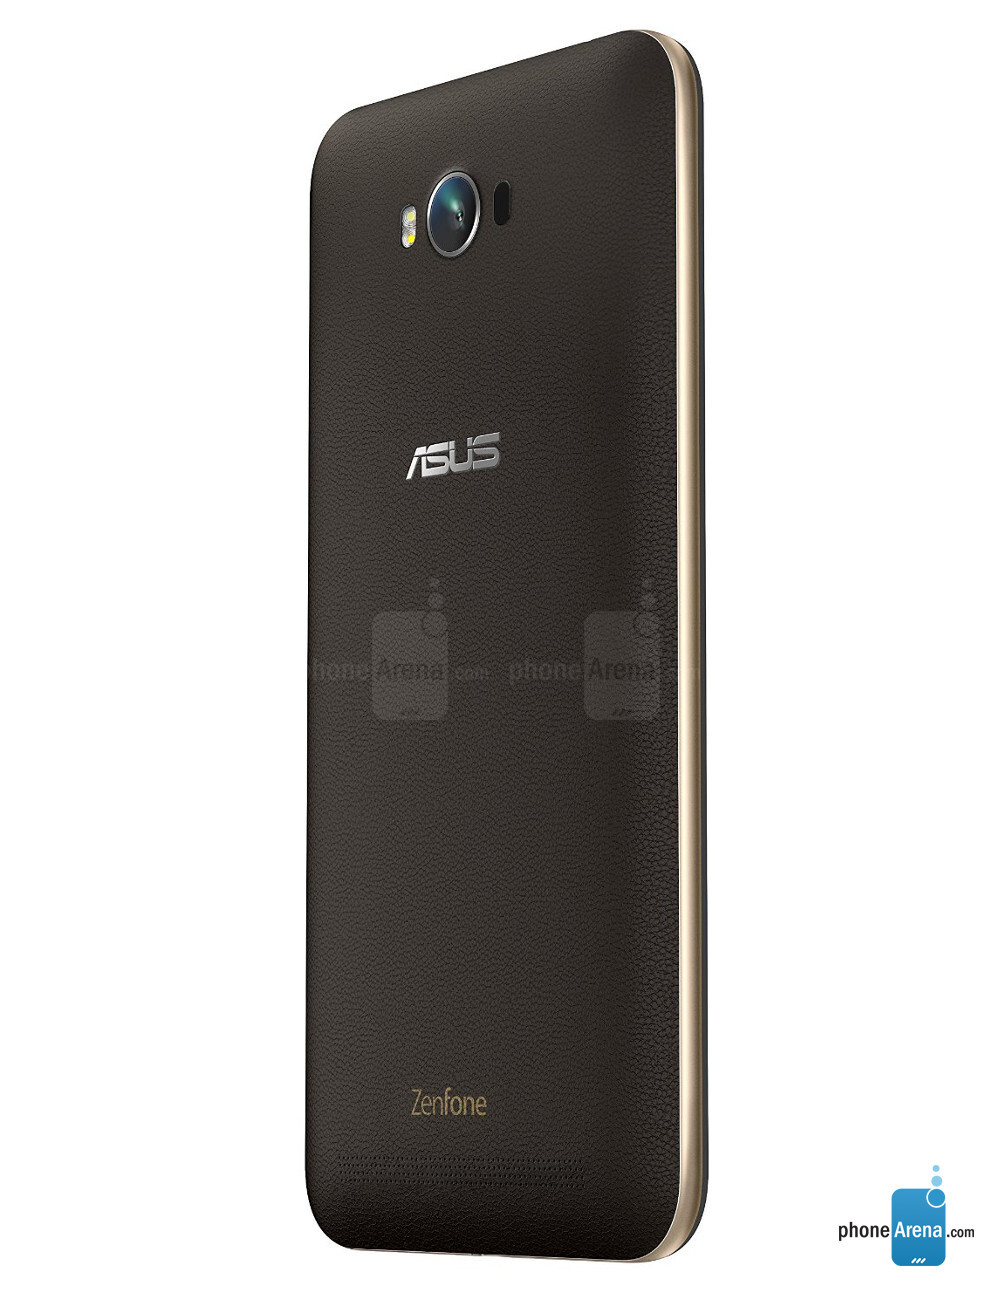 asus zenfone max full specs. Black Bedroom Furniture Sets. Home Design Ideas